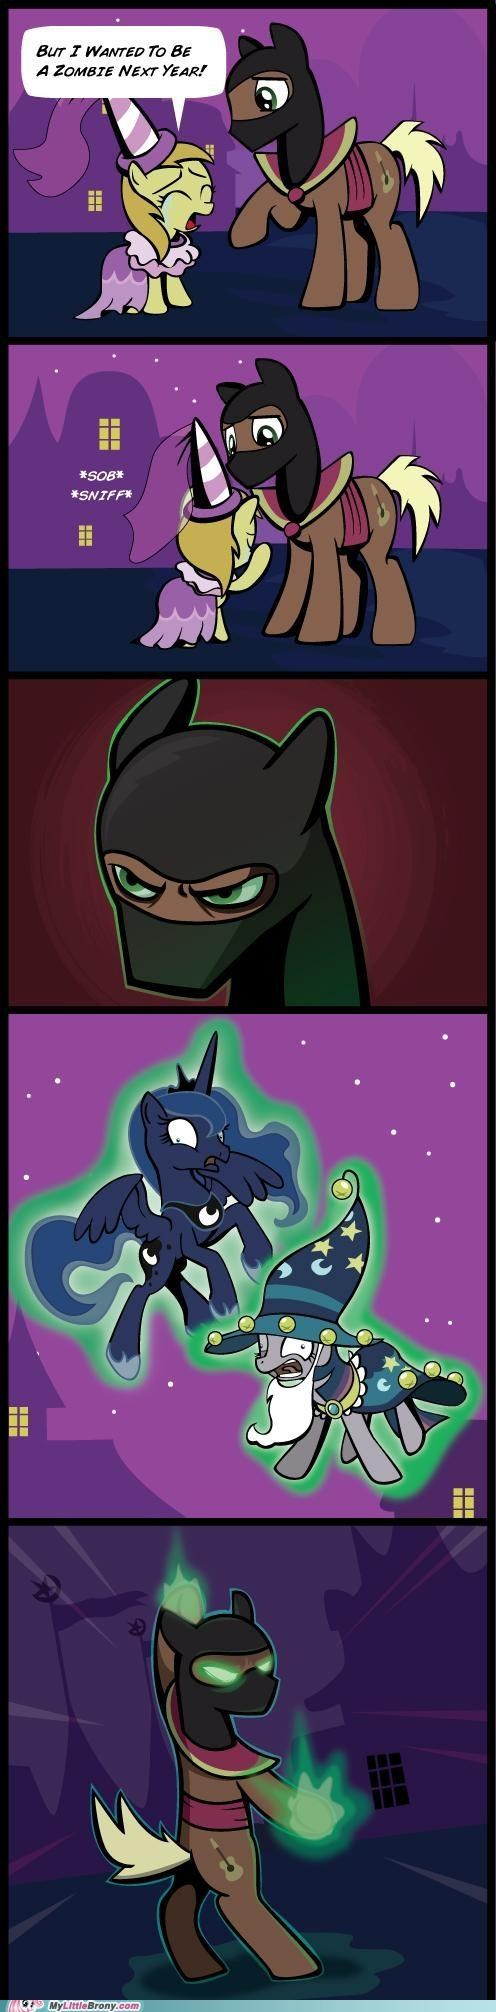 comic comics luna nightmare night Sad scary scorpion sob twilight sparkle zombie - 5363124480